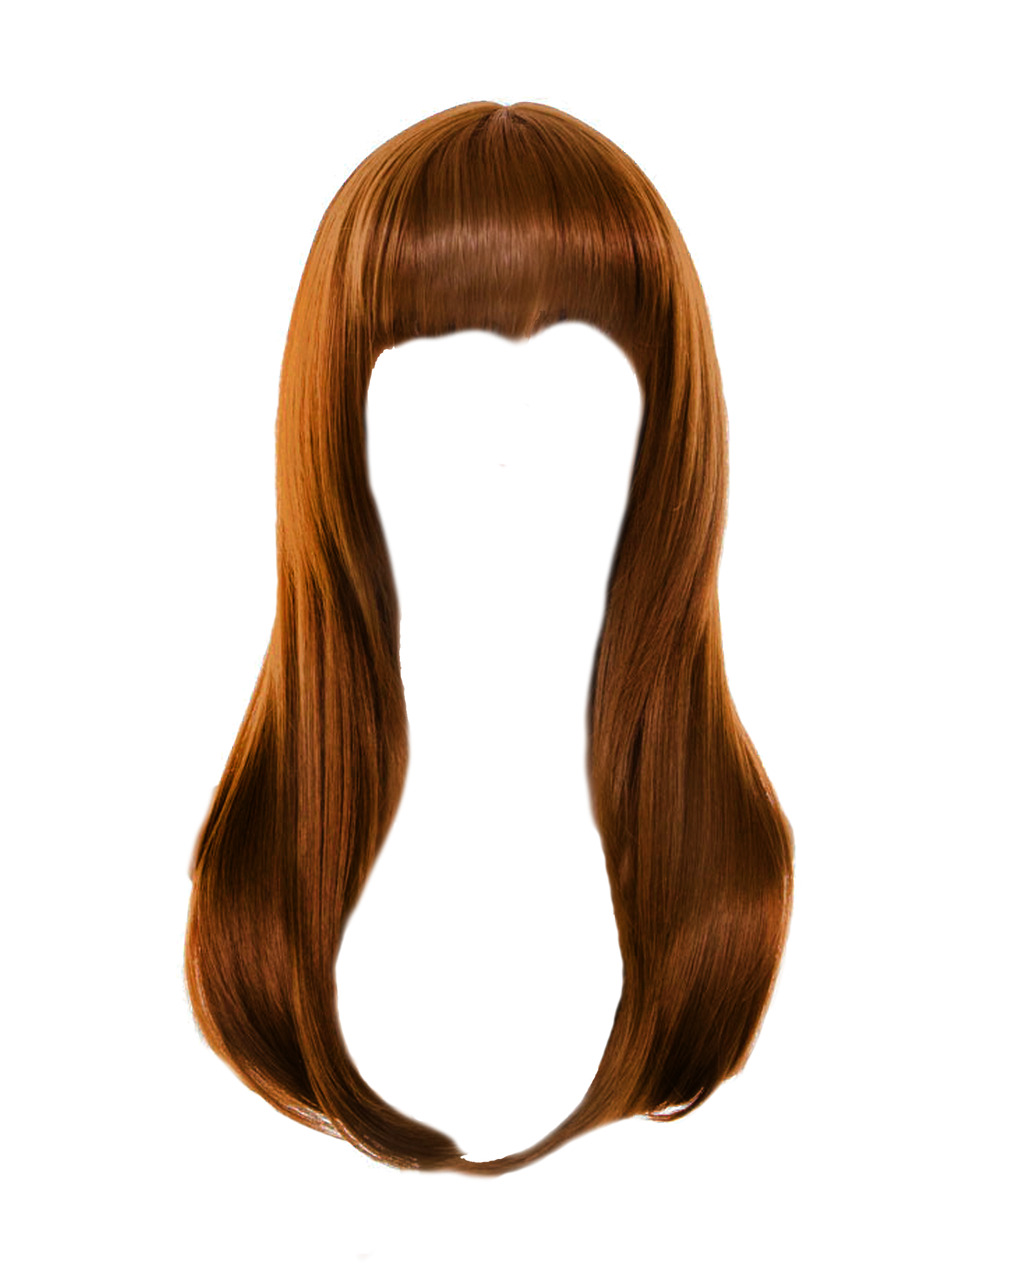 Png Hair 3 By Moonglowlilly On Deviantart